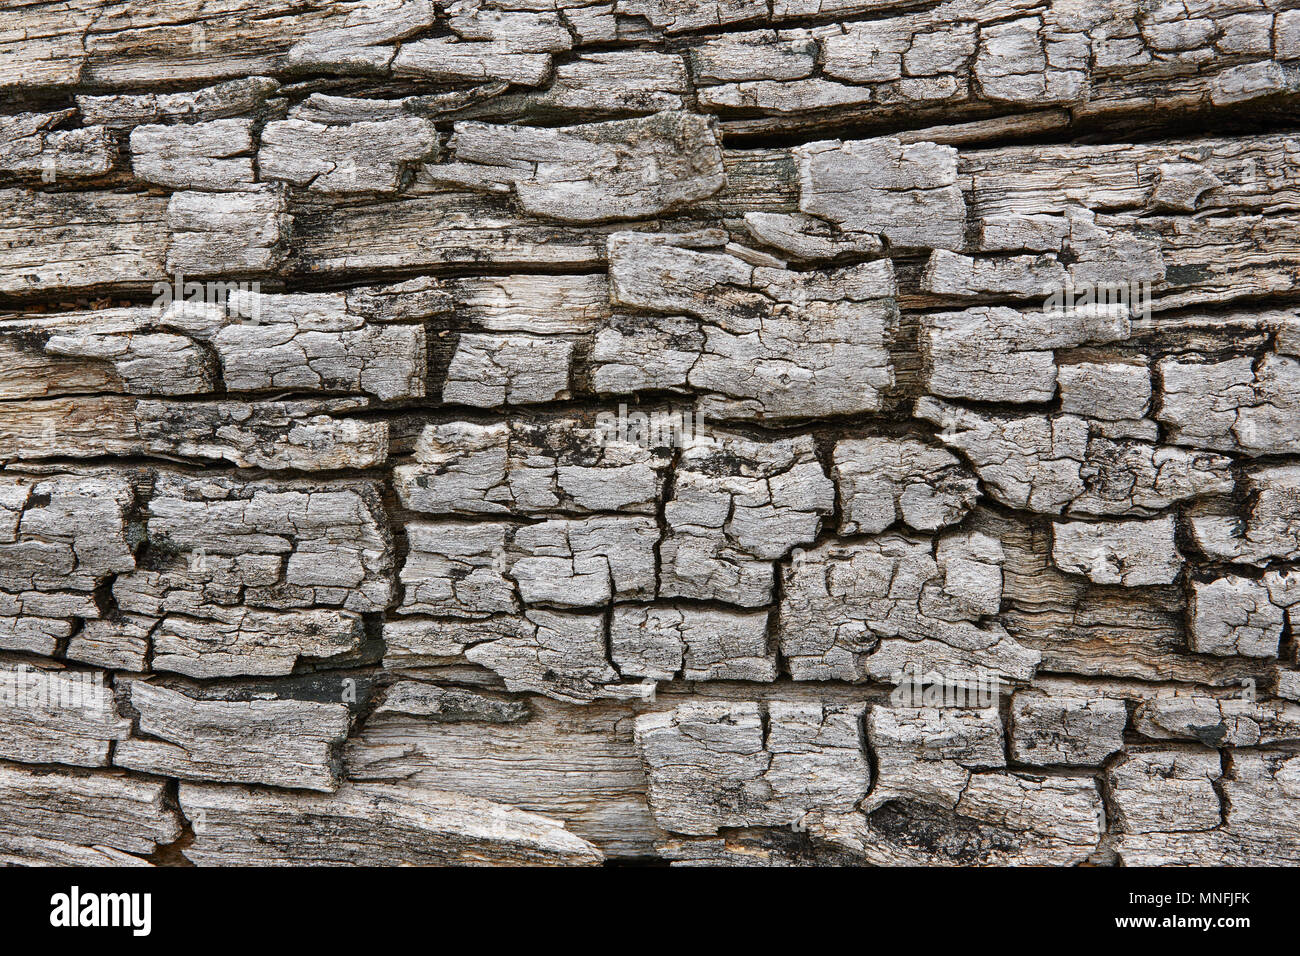 Tree bark surface. Textured wooden background. Horizontal - Stock Image